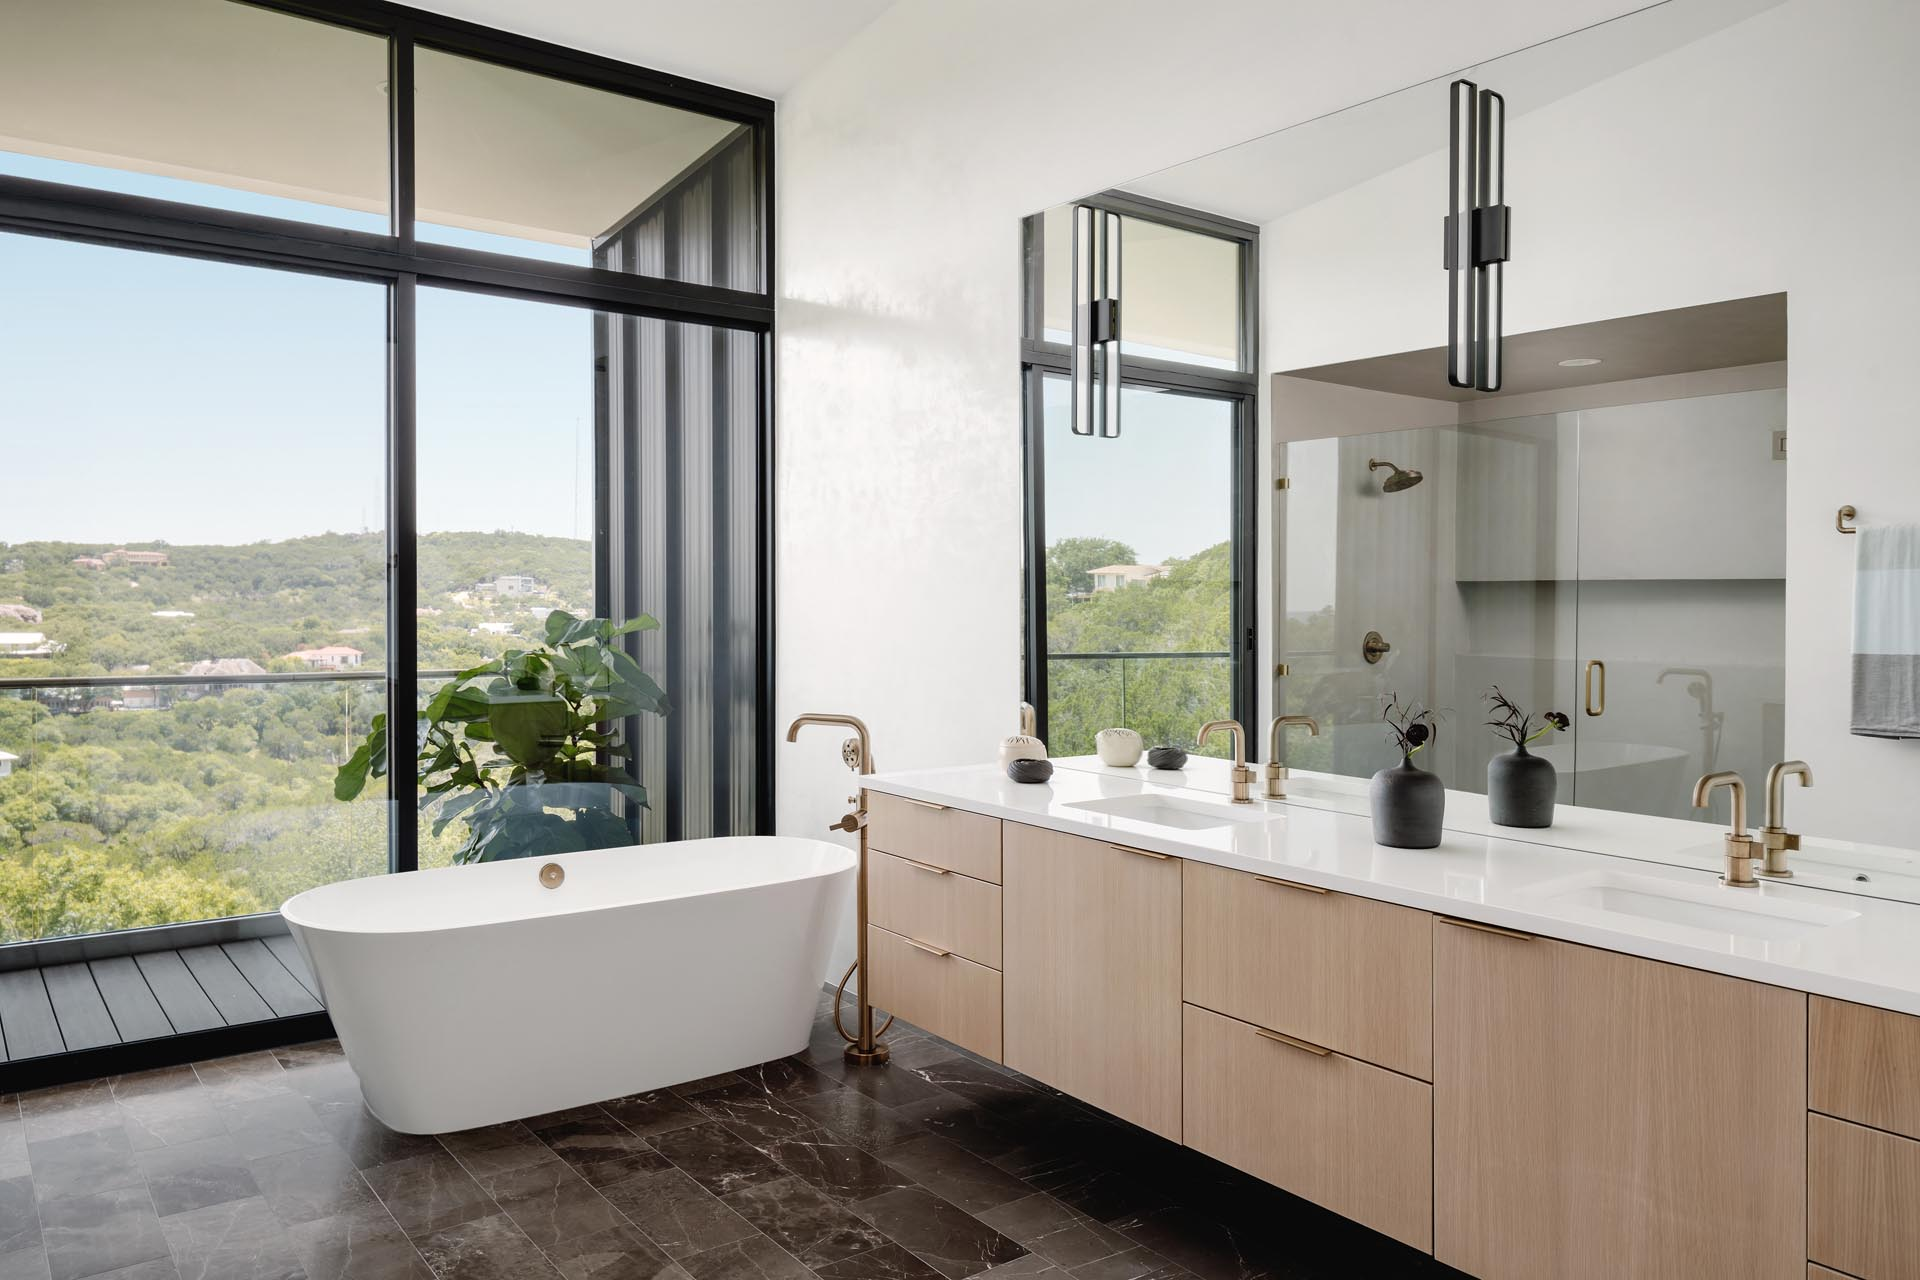 A modern bathroom with a balcony, freestanding bathtub, glass enclosed shower, and floating wood vanity.